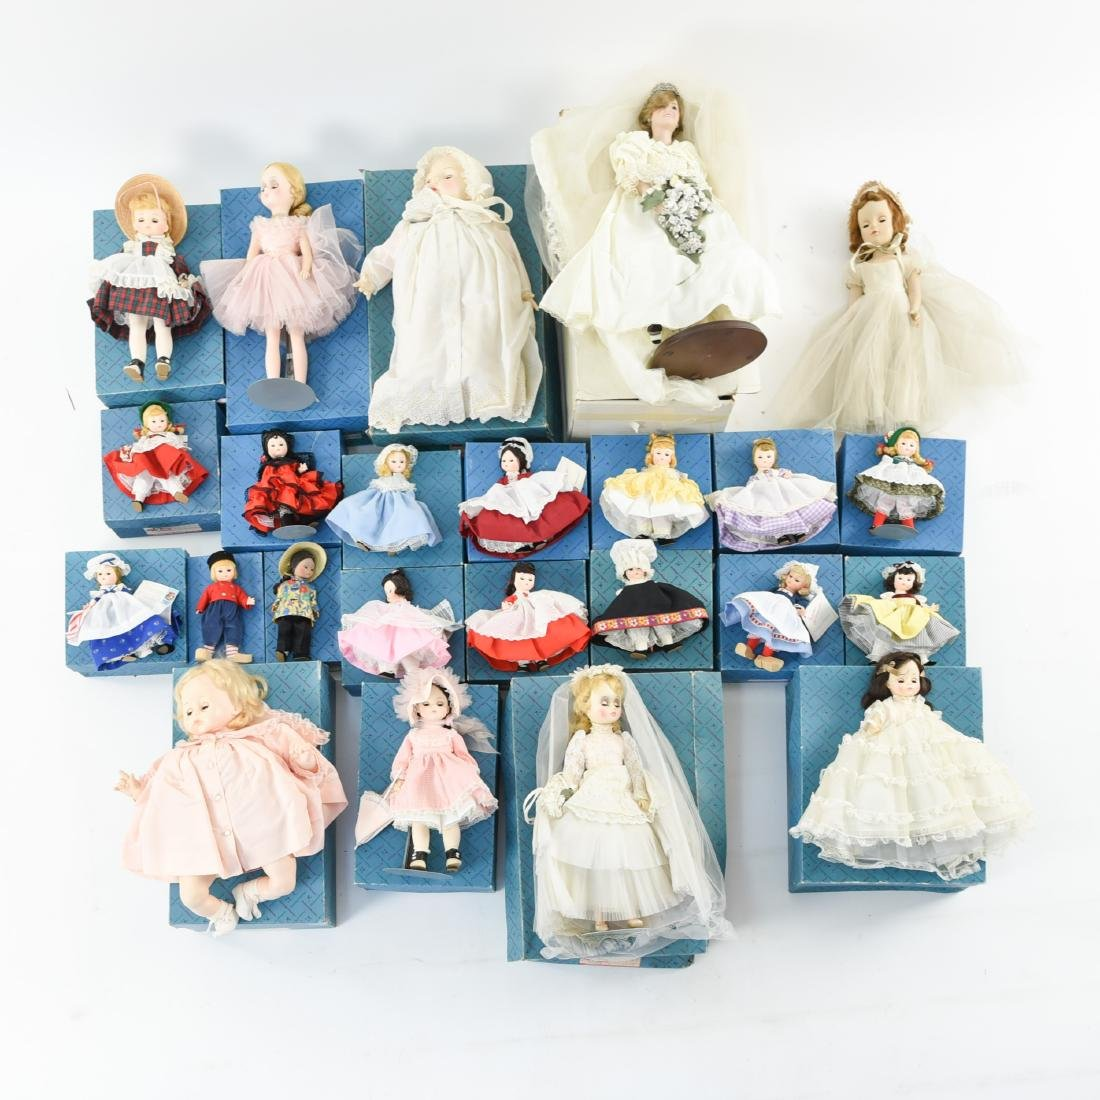 LARGE GROUPING OF MADAME ALEXANDER DOLLS